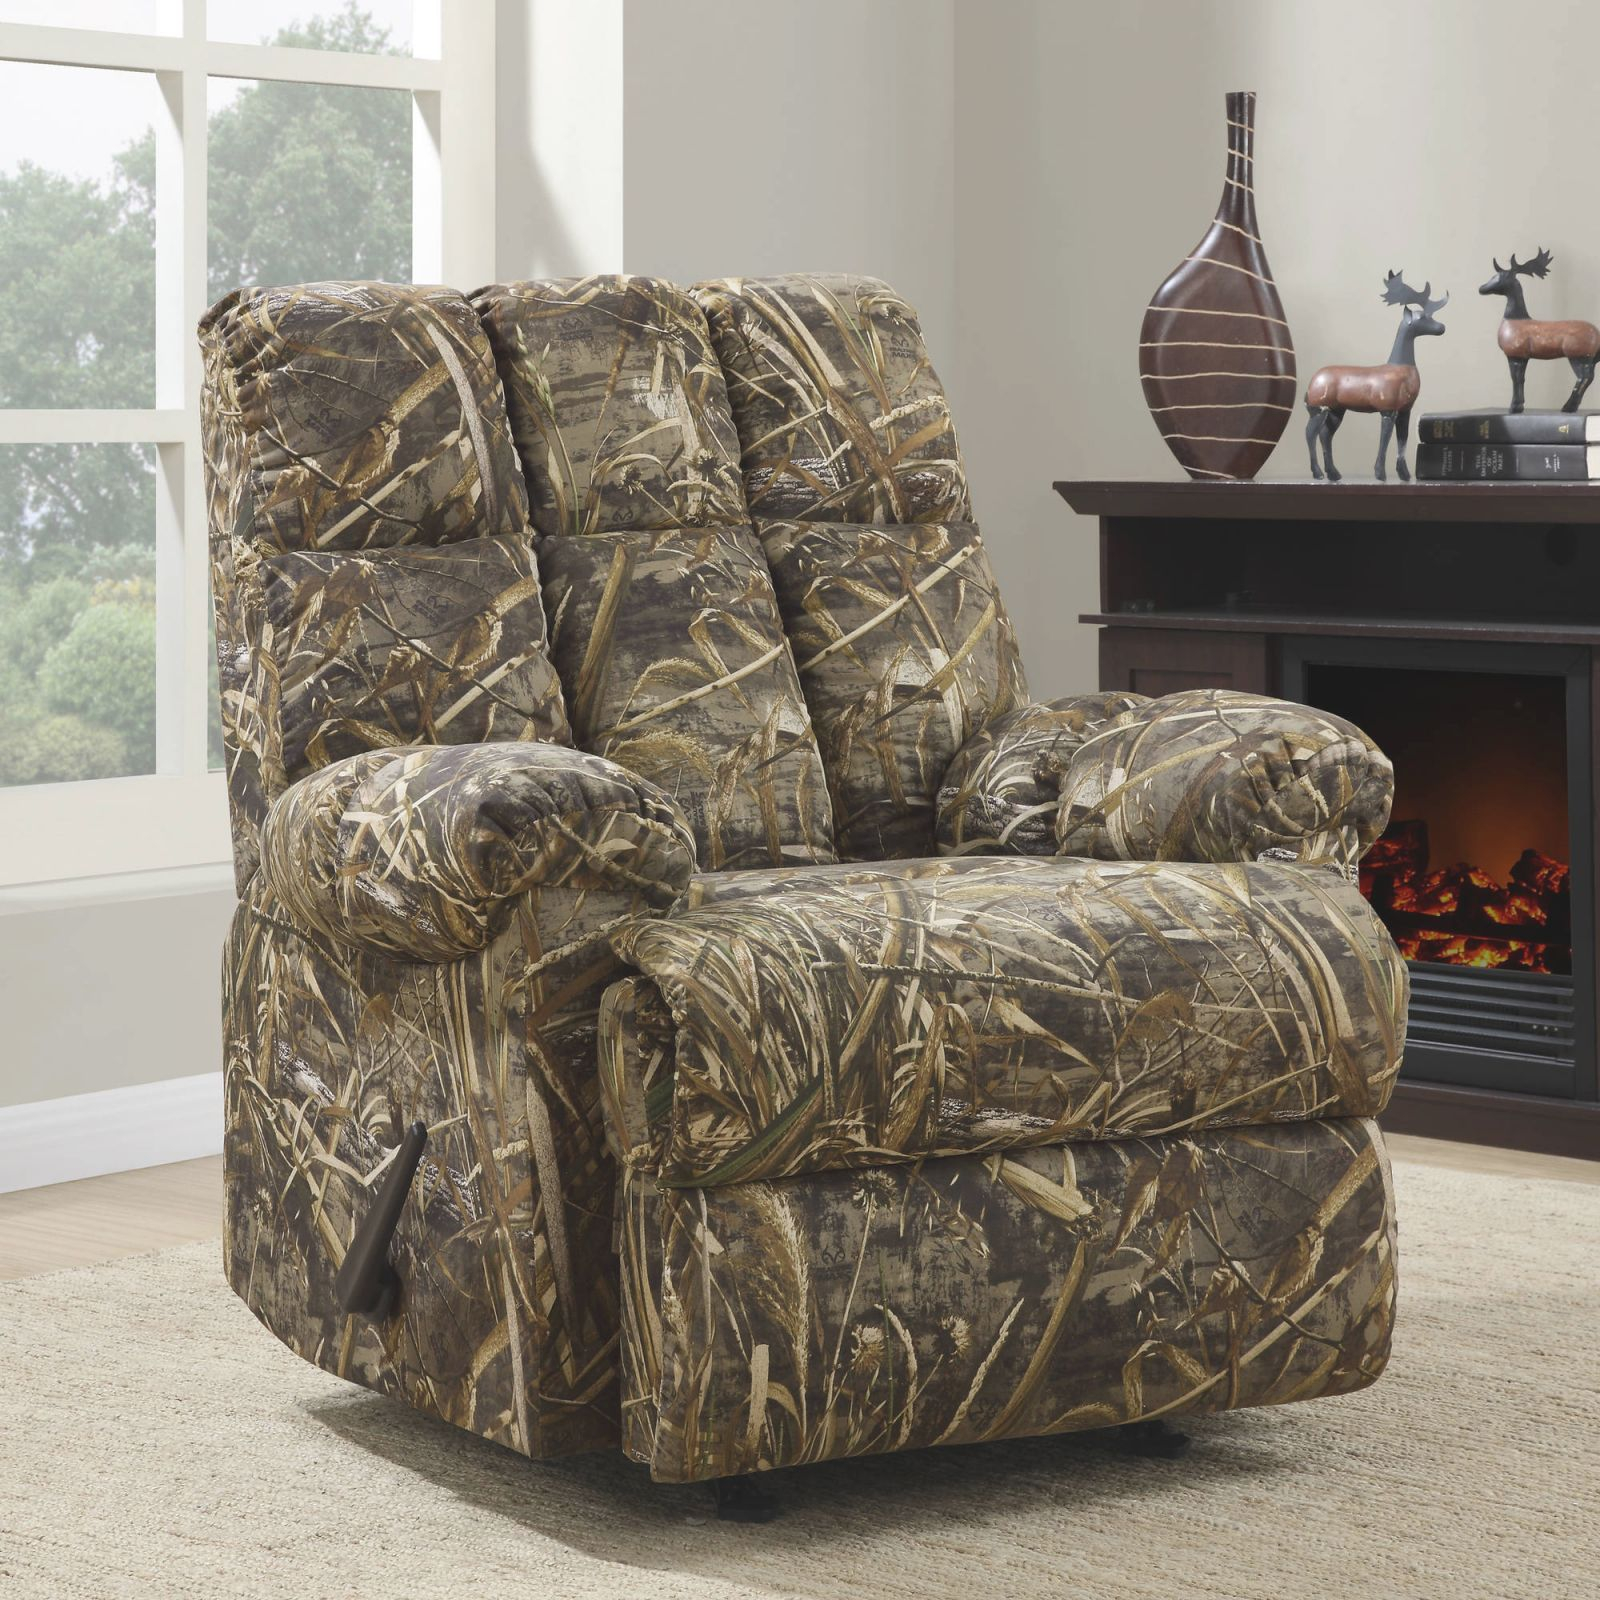 Dorel Living Realtree Camouflage Rocker Recliner with Inspirational Camo Living Room Furniture